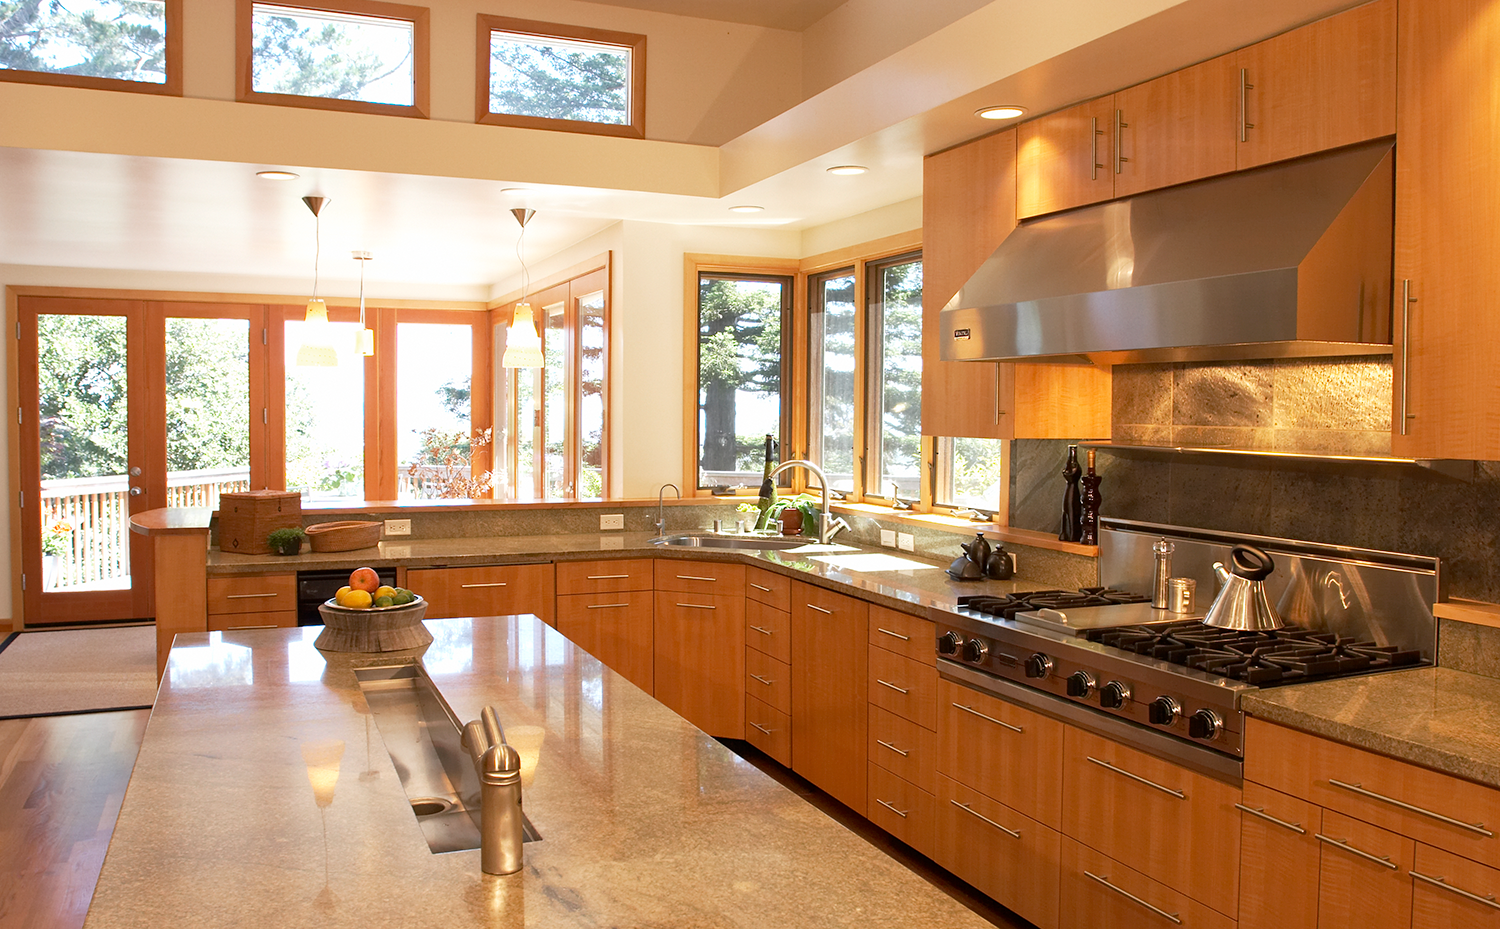 Benefits of custom or prefab cabinets